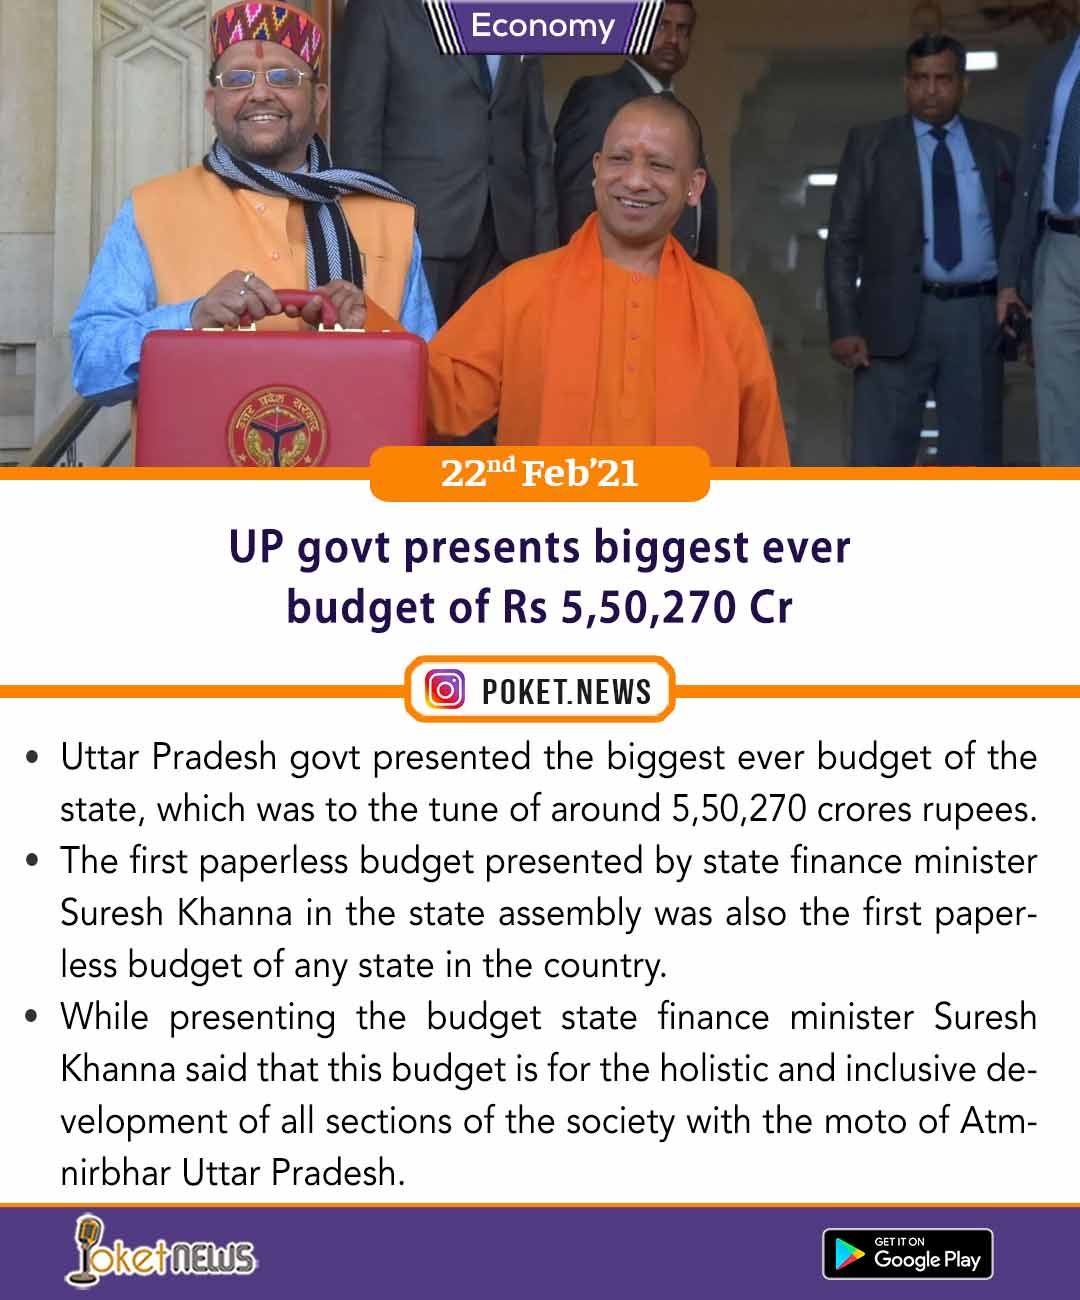 UP govt presents biggest ever budget of Rs 5,50,270 Cr